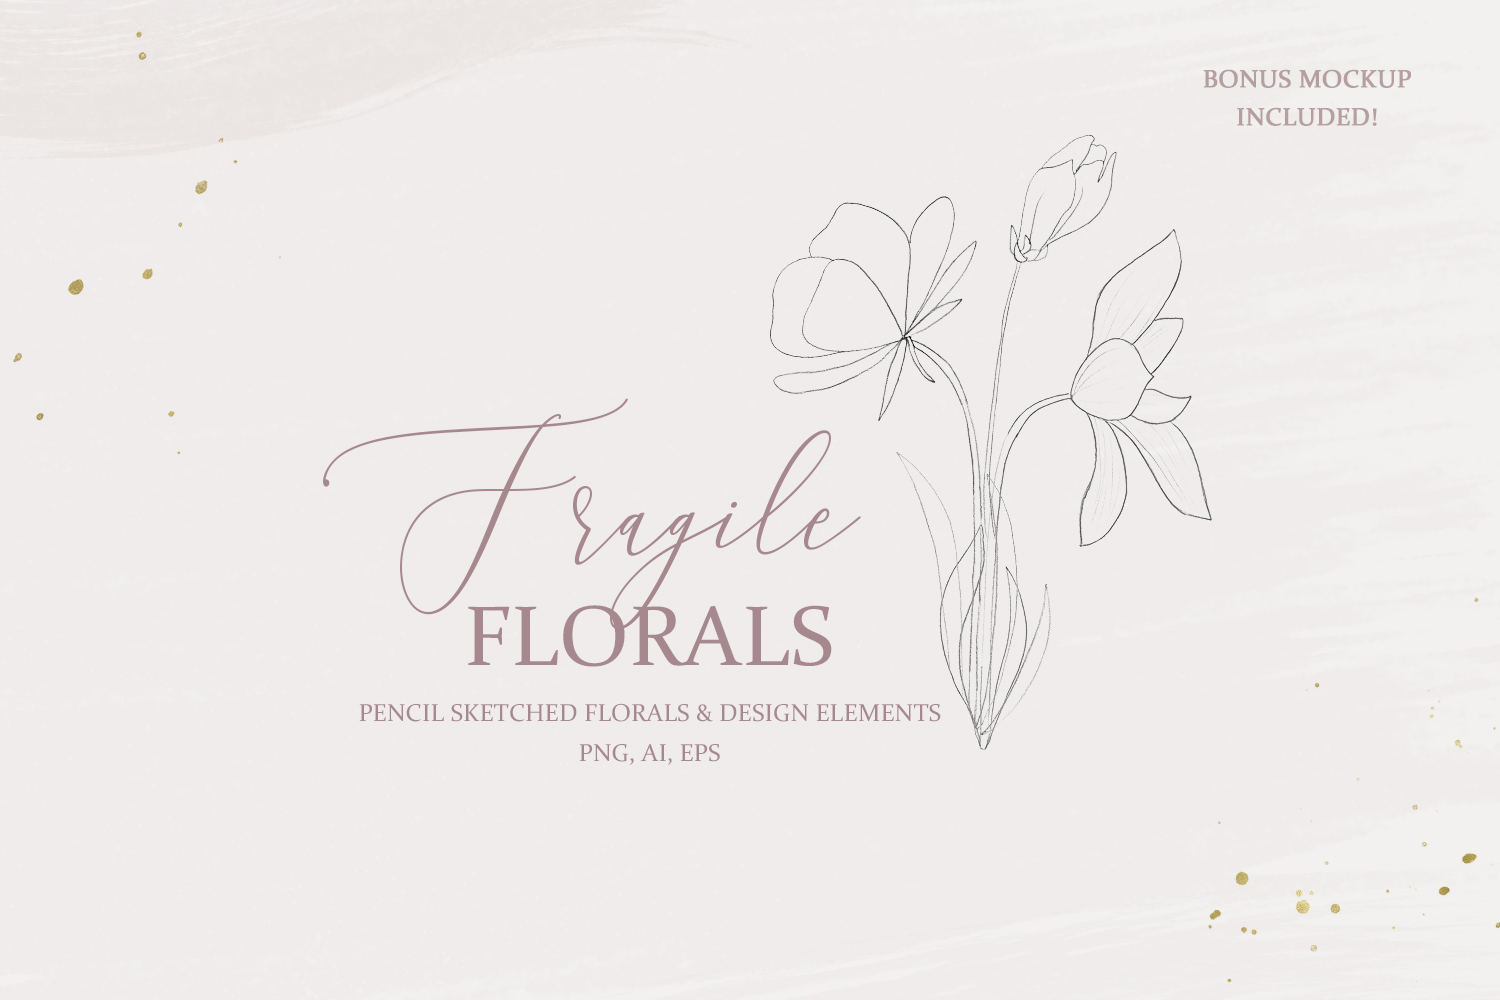 Fine Art Pencil Sketch Florals, Gold Brush Strokes, Textures example image 1